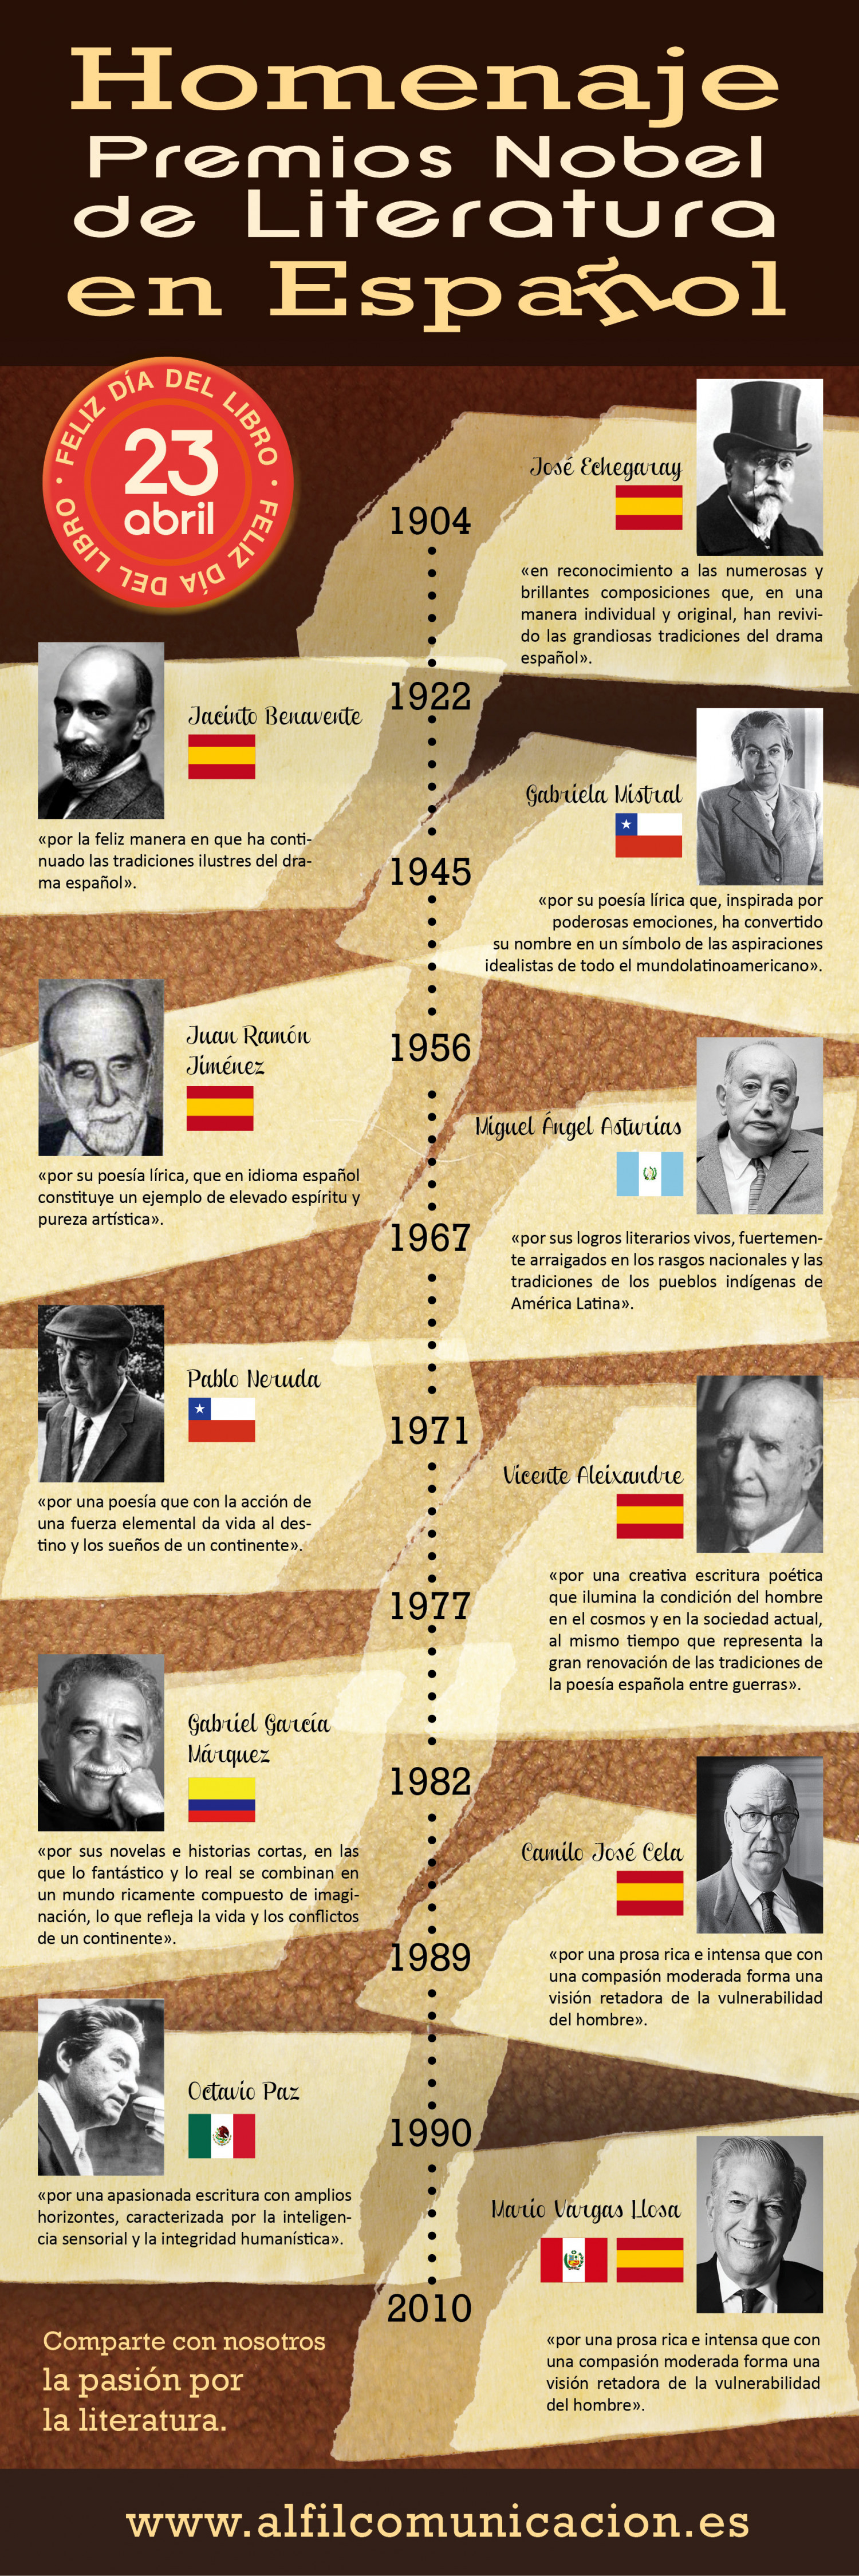 Spanish Literature Nobel Prizes Infographic